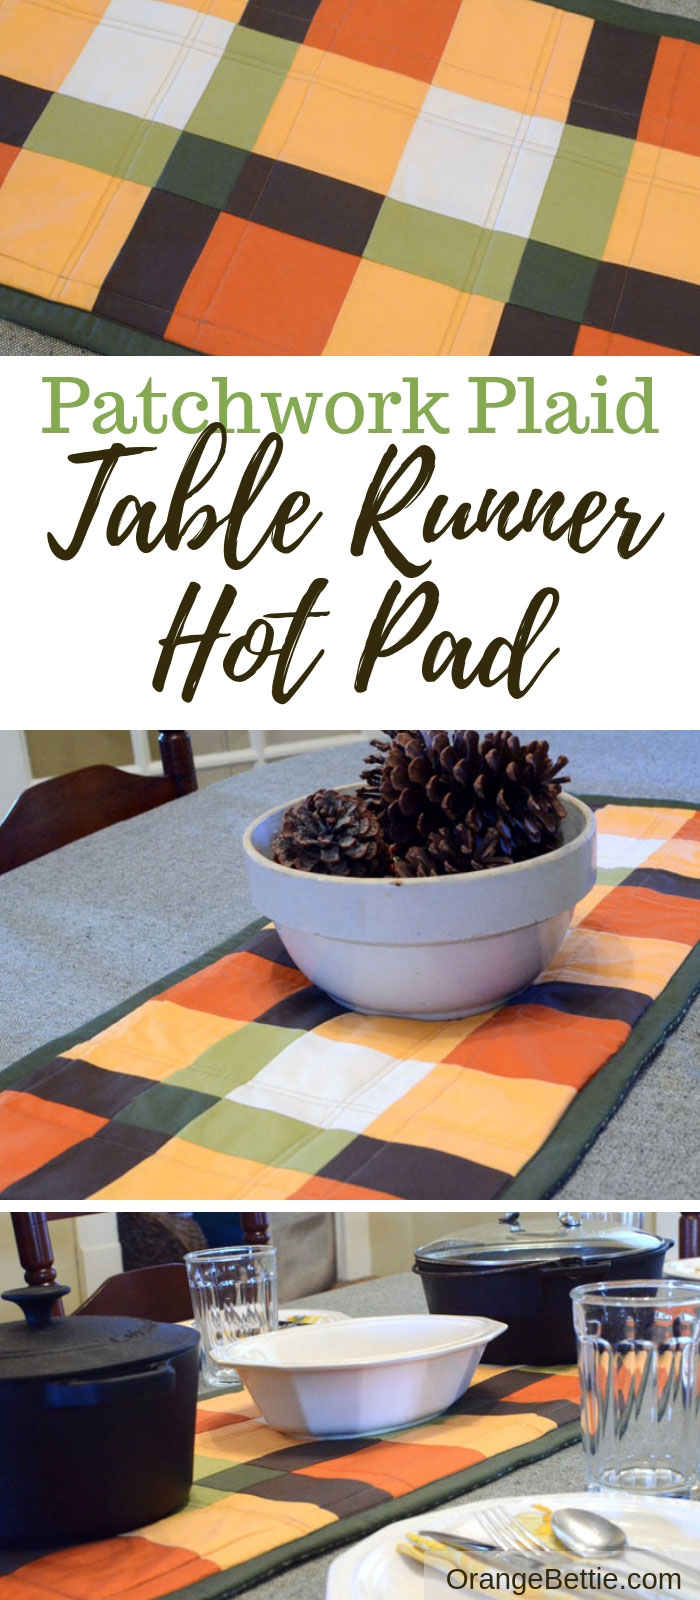 This Table Runner Hot Pad is perfect for holidays and family gatherings!  Take the heat off of your table while still looking cute . . . win-win!